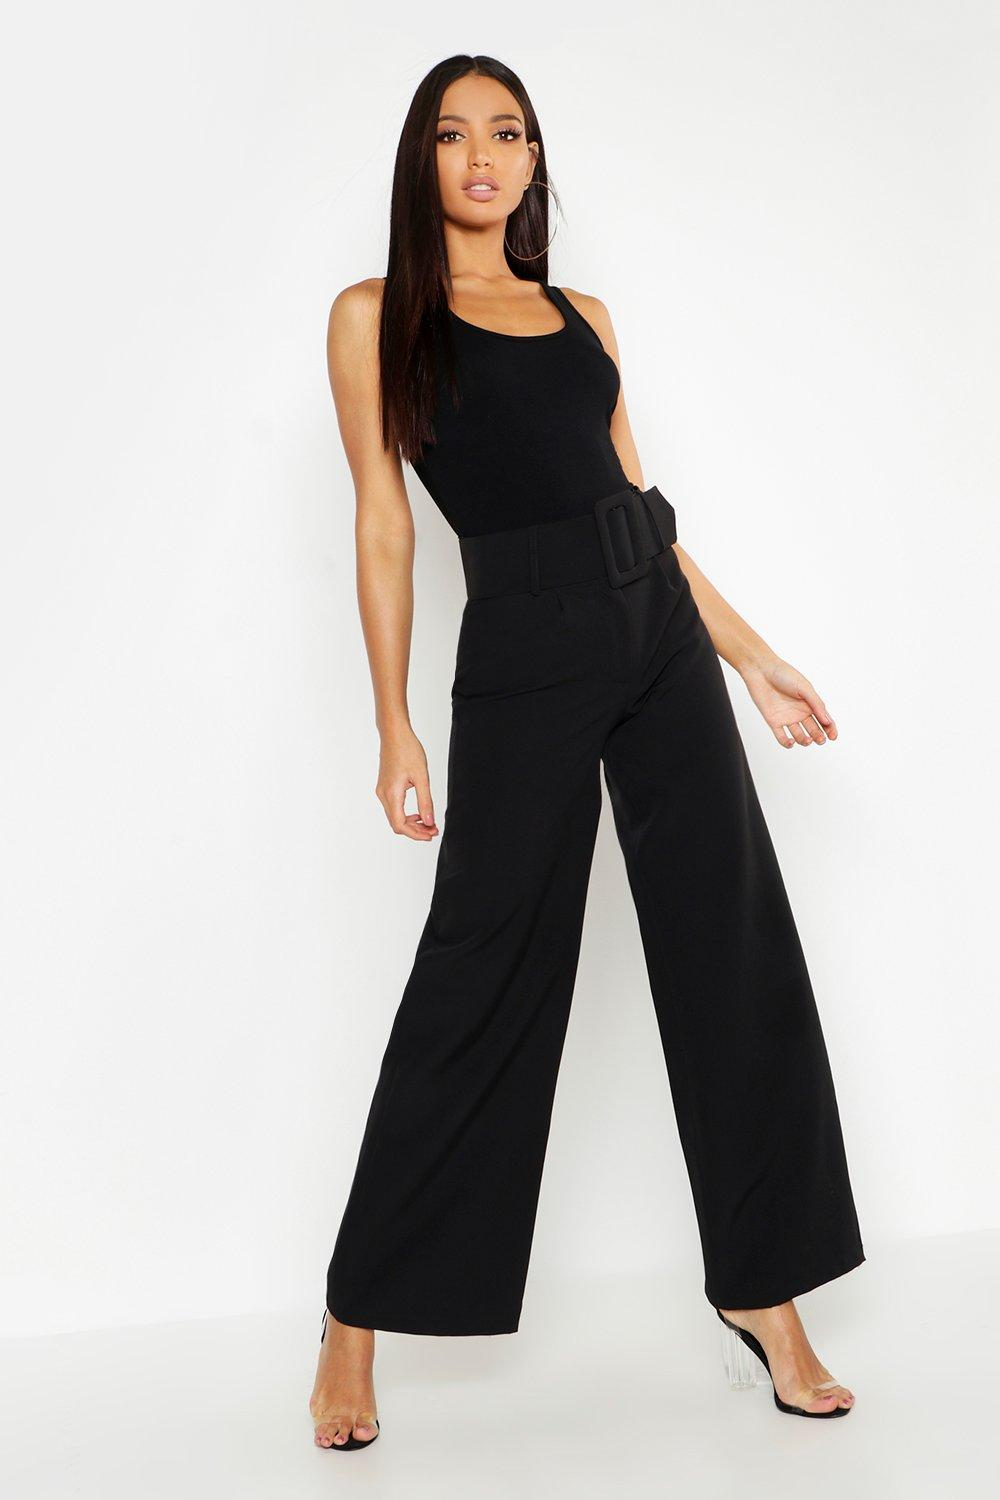 796a4eb3ae2a Super High Waisted Belted Wide Leg Pants. Hover to zoom